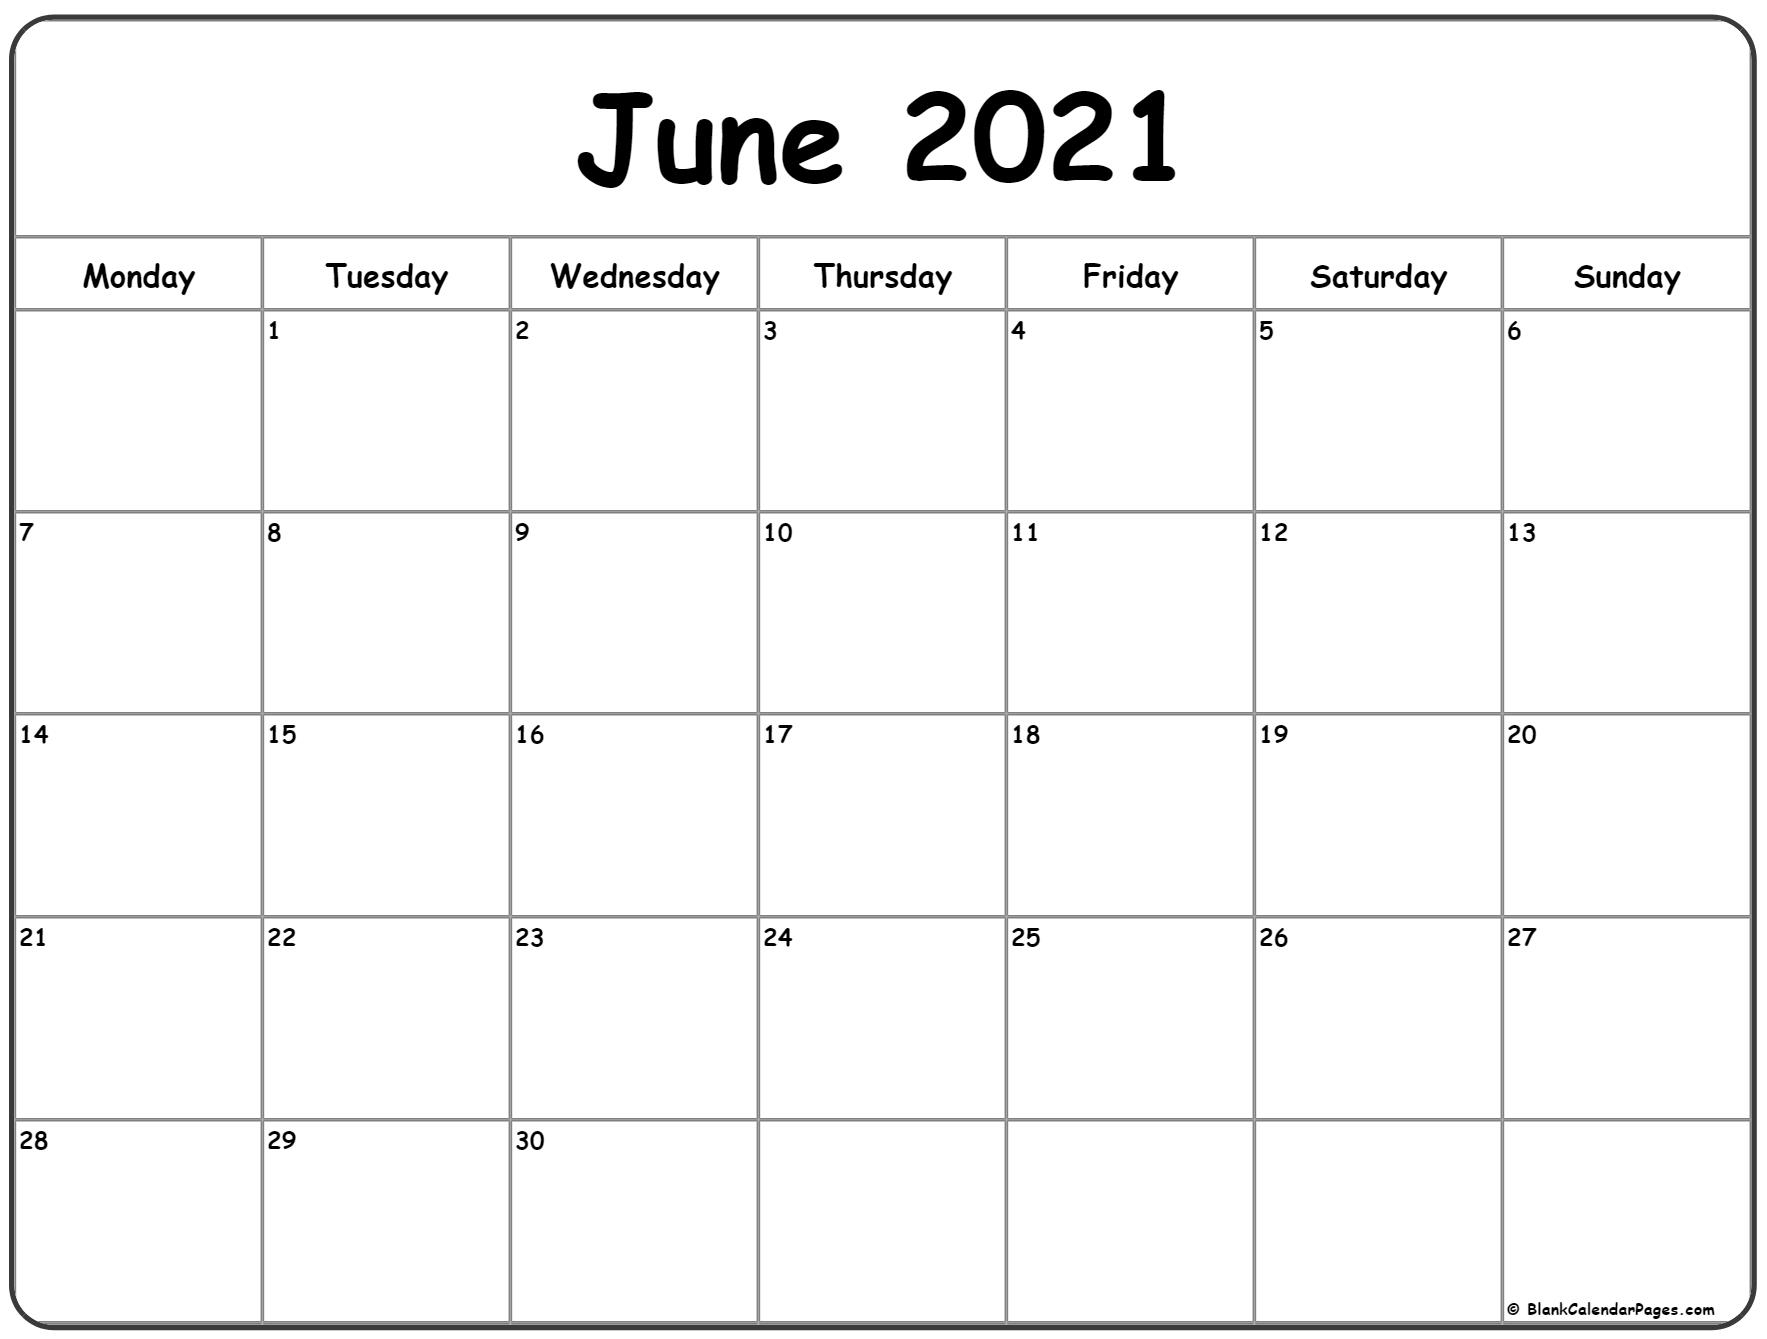 Take Calendar Page 2021 June And July